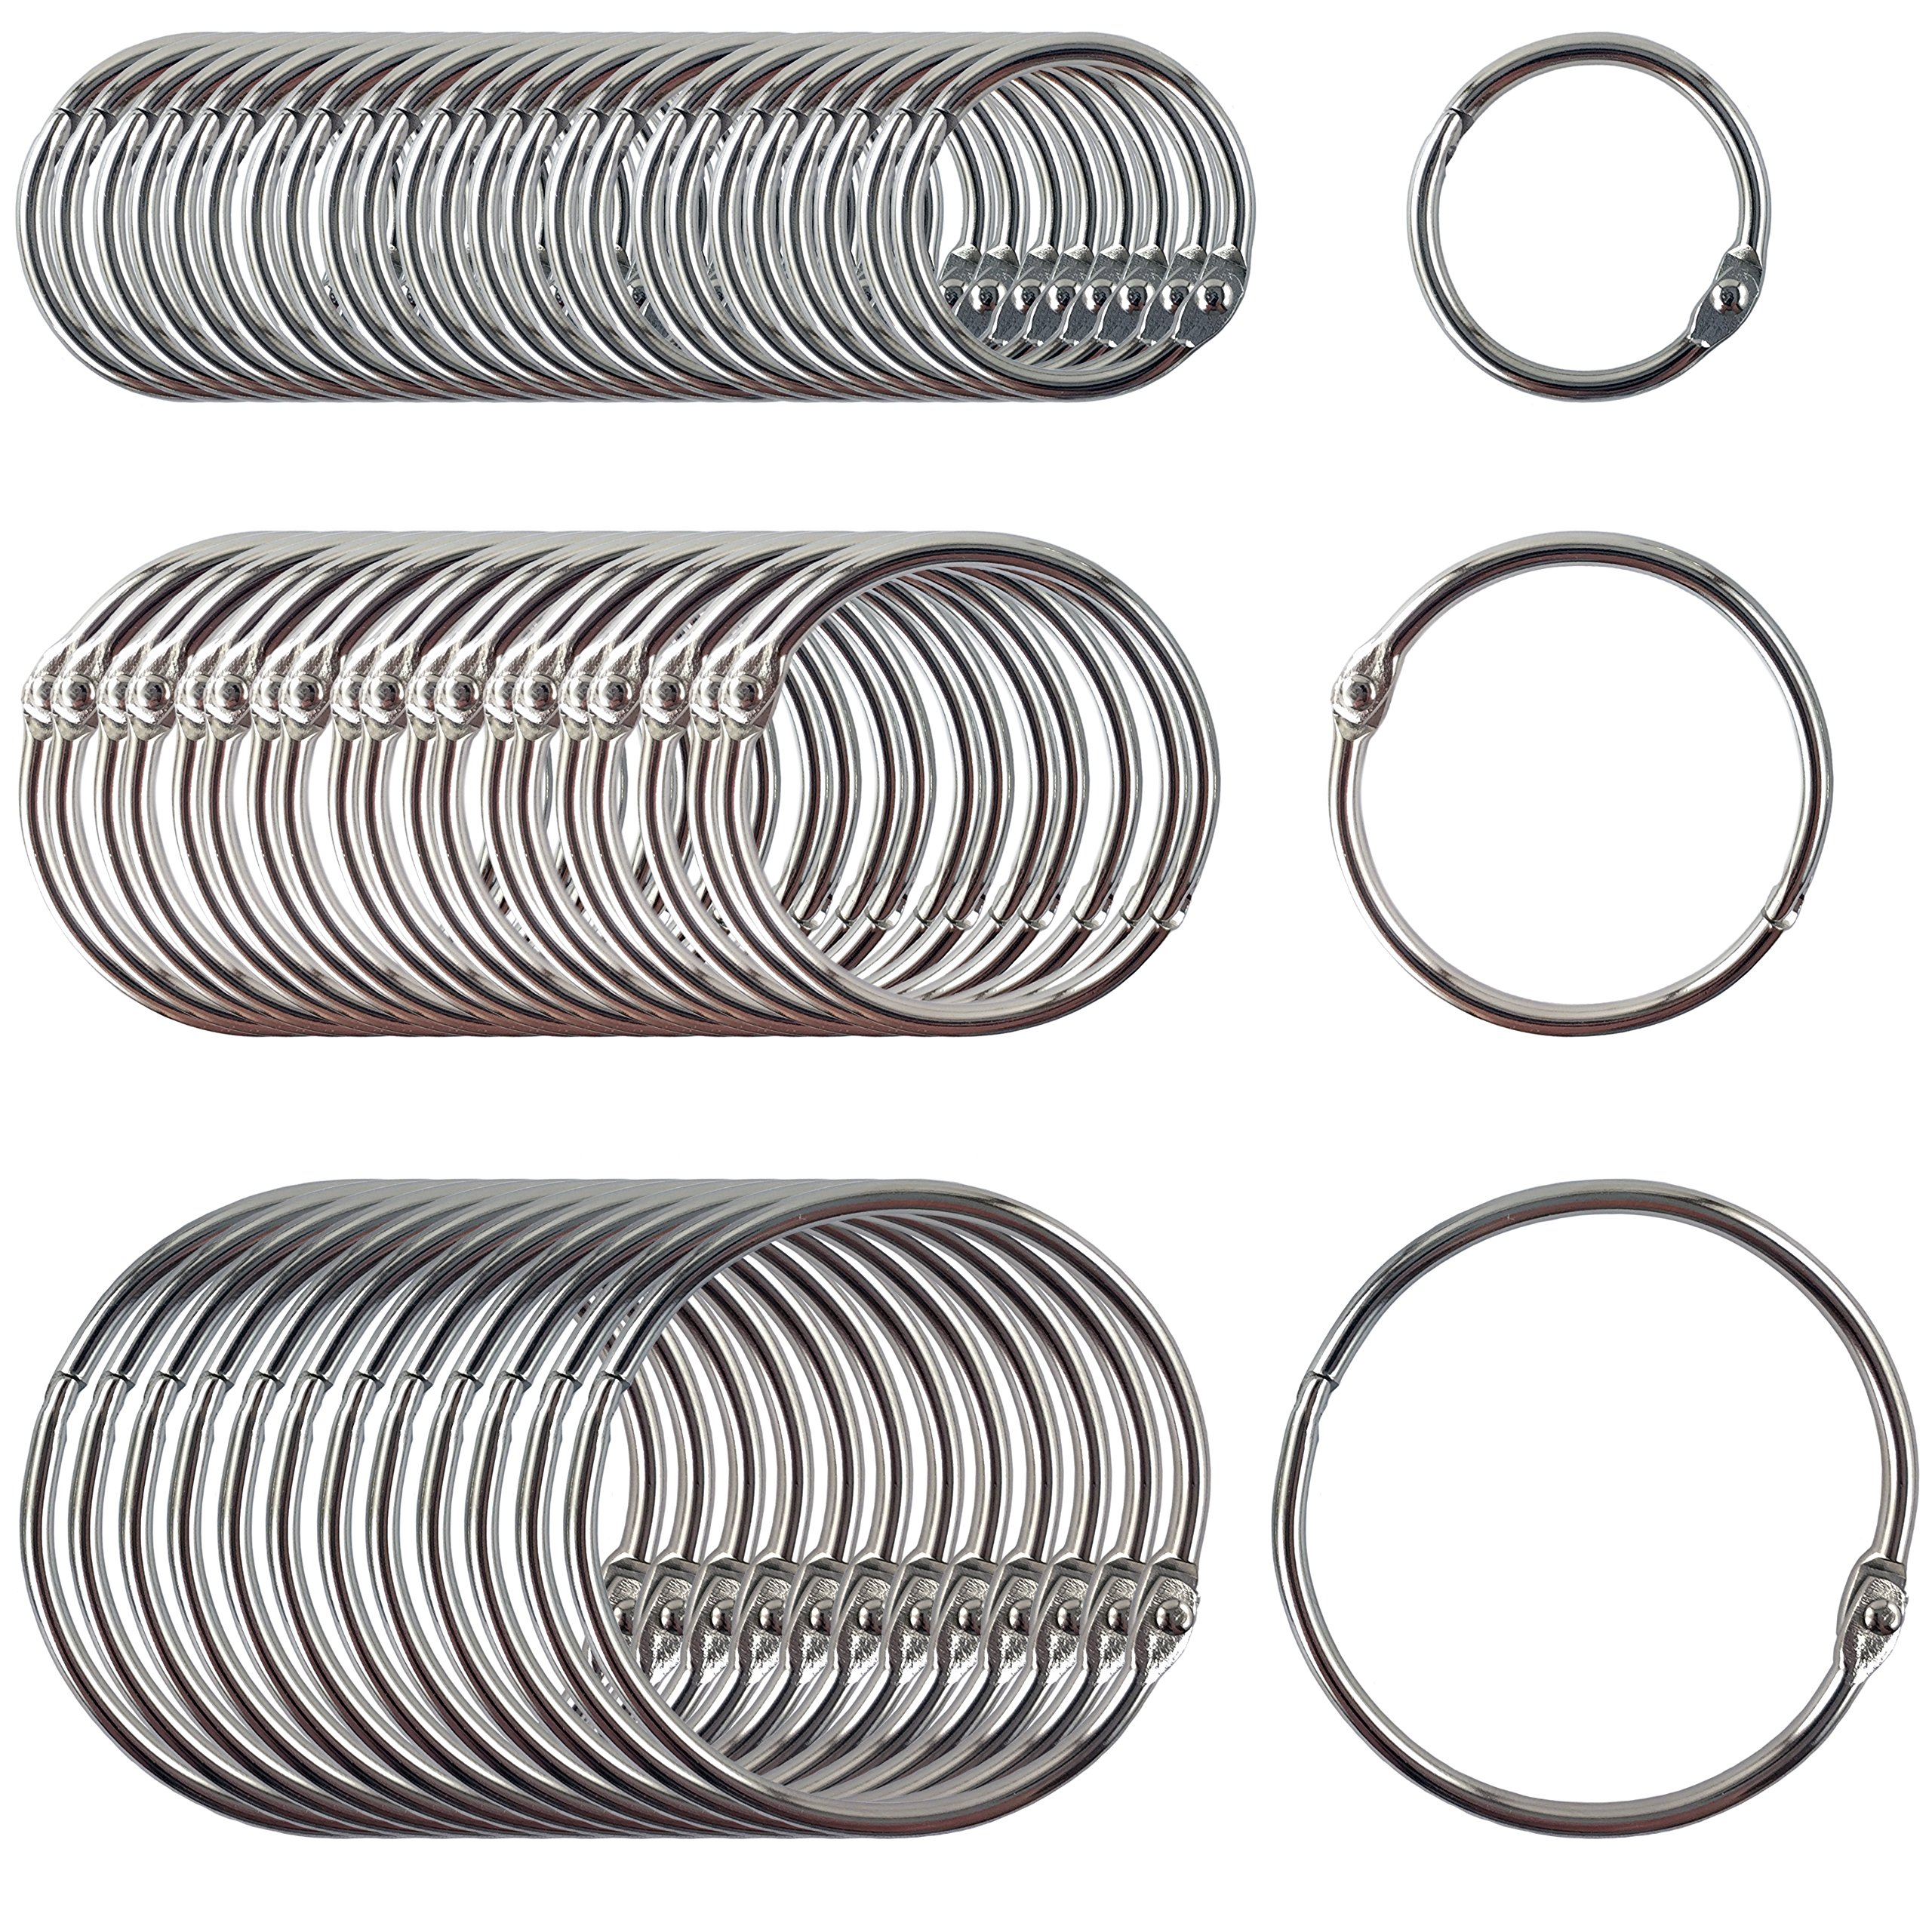 Clipco Book Rings Assorted Sizes Small, Medium and Large Nickel Plated (250-Pack) by Clipco